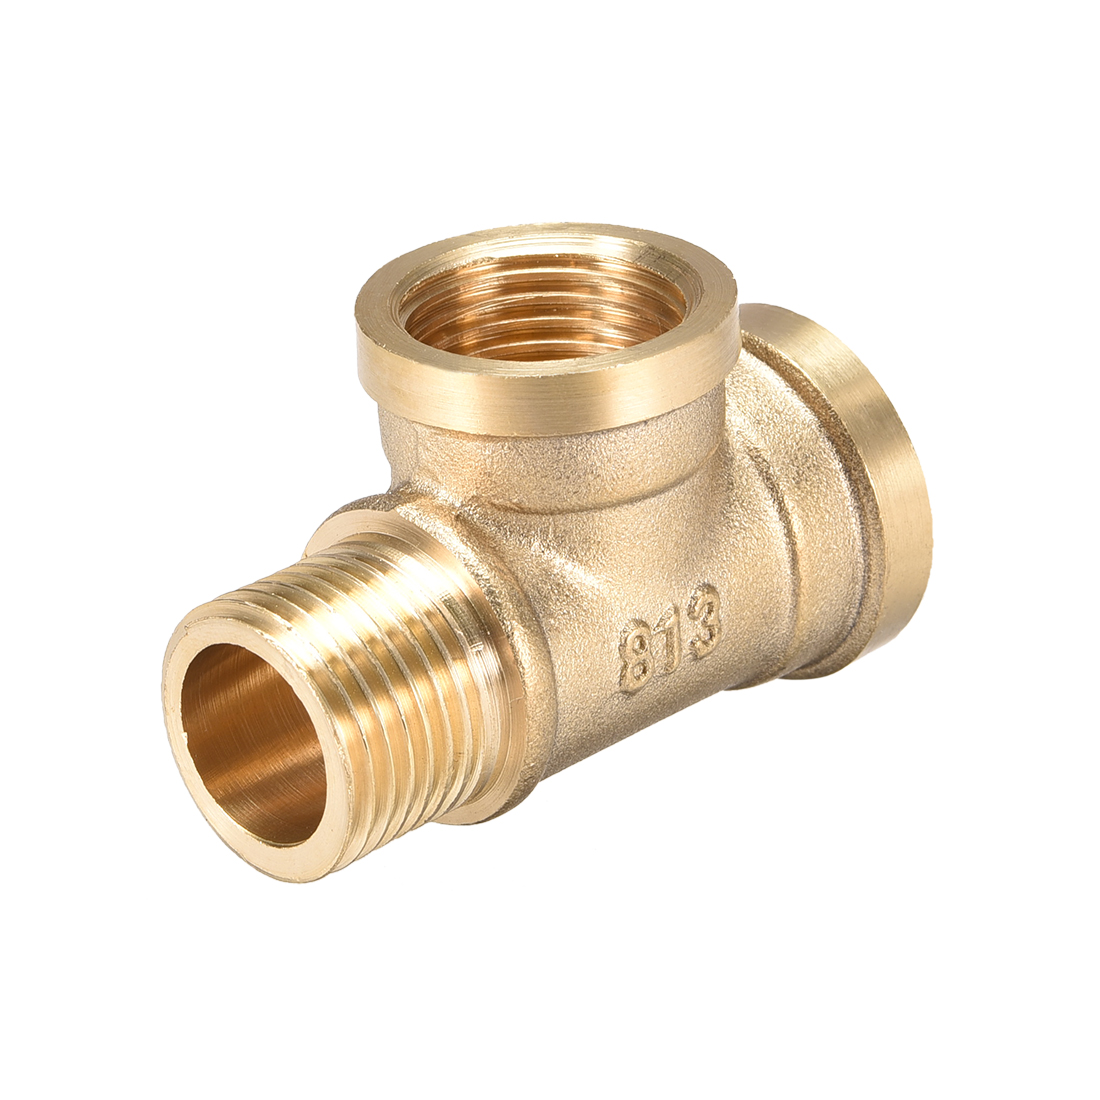 Brass Tee Pipe Fitting G1/2 Male x G1/2 Female x G1/2 Female T Shaped Connector